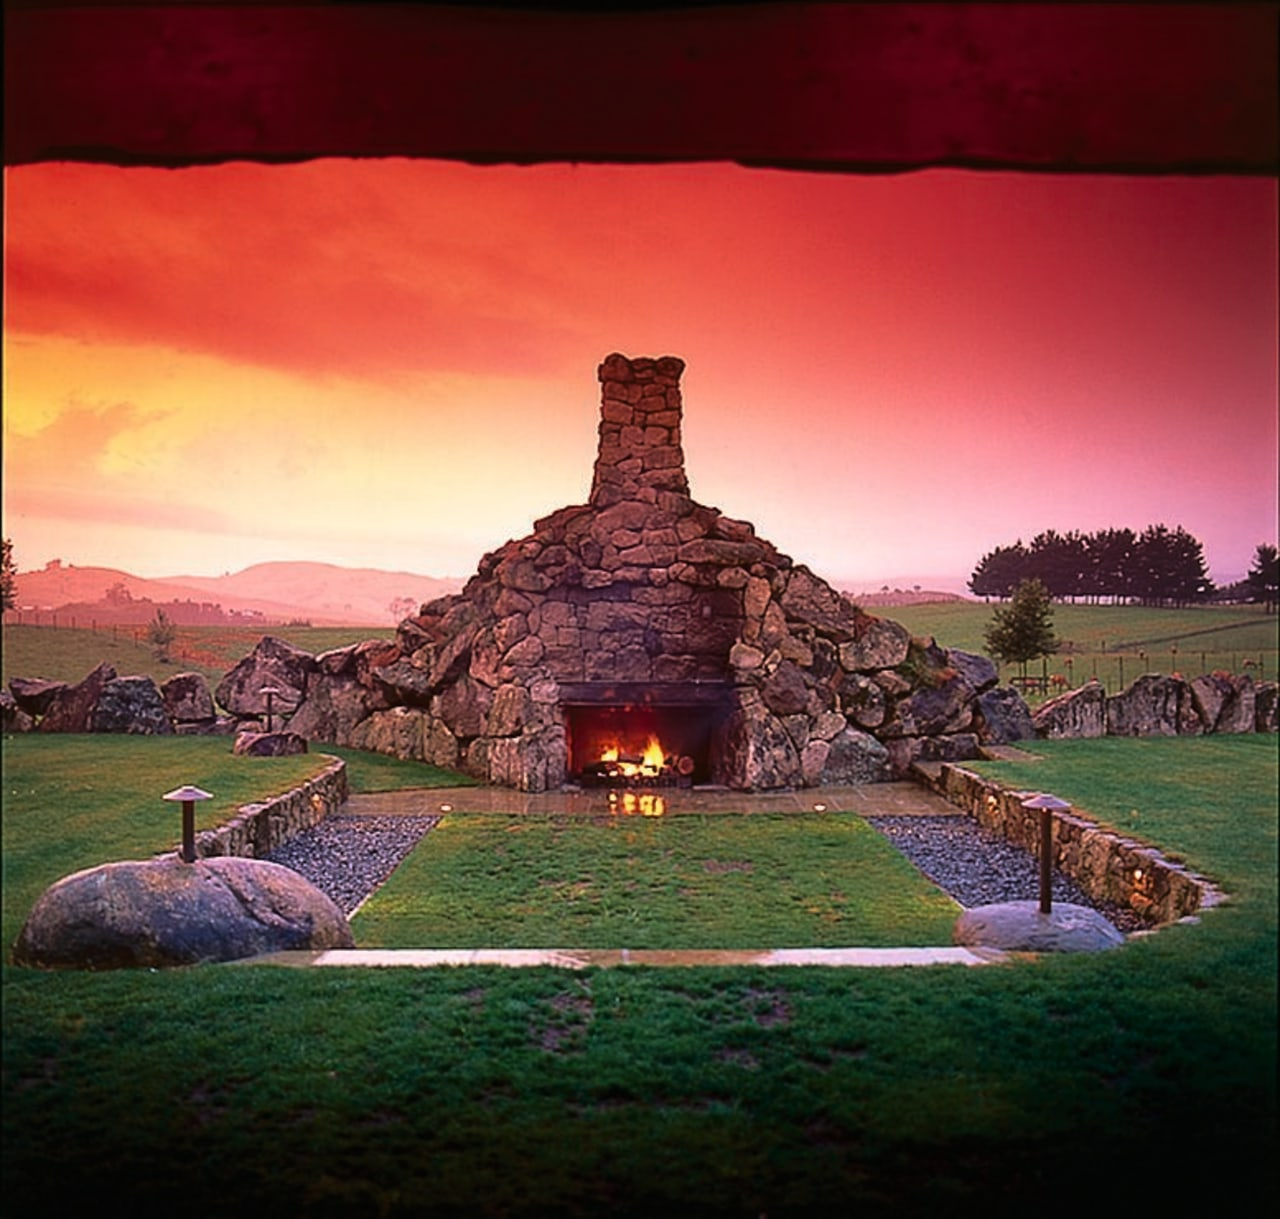 Outdoor fireplace made from stone, set in lawn archaeological site, dawn, evening, grass, historic site, landscape, nature, sky, red